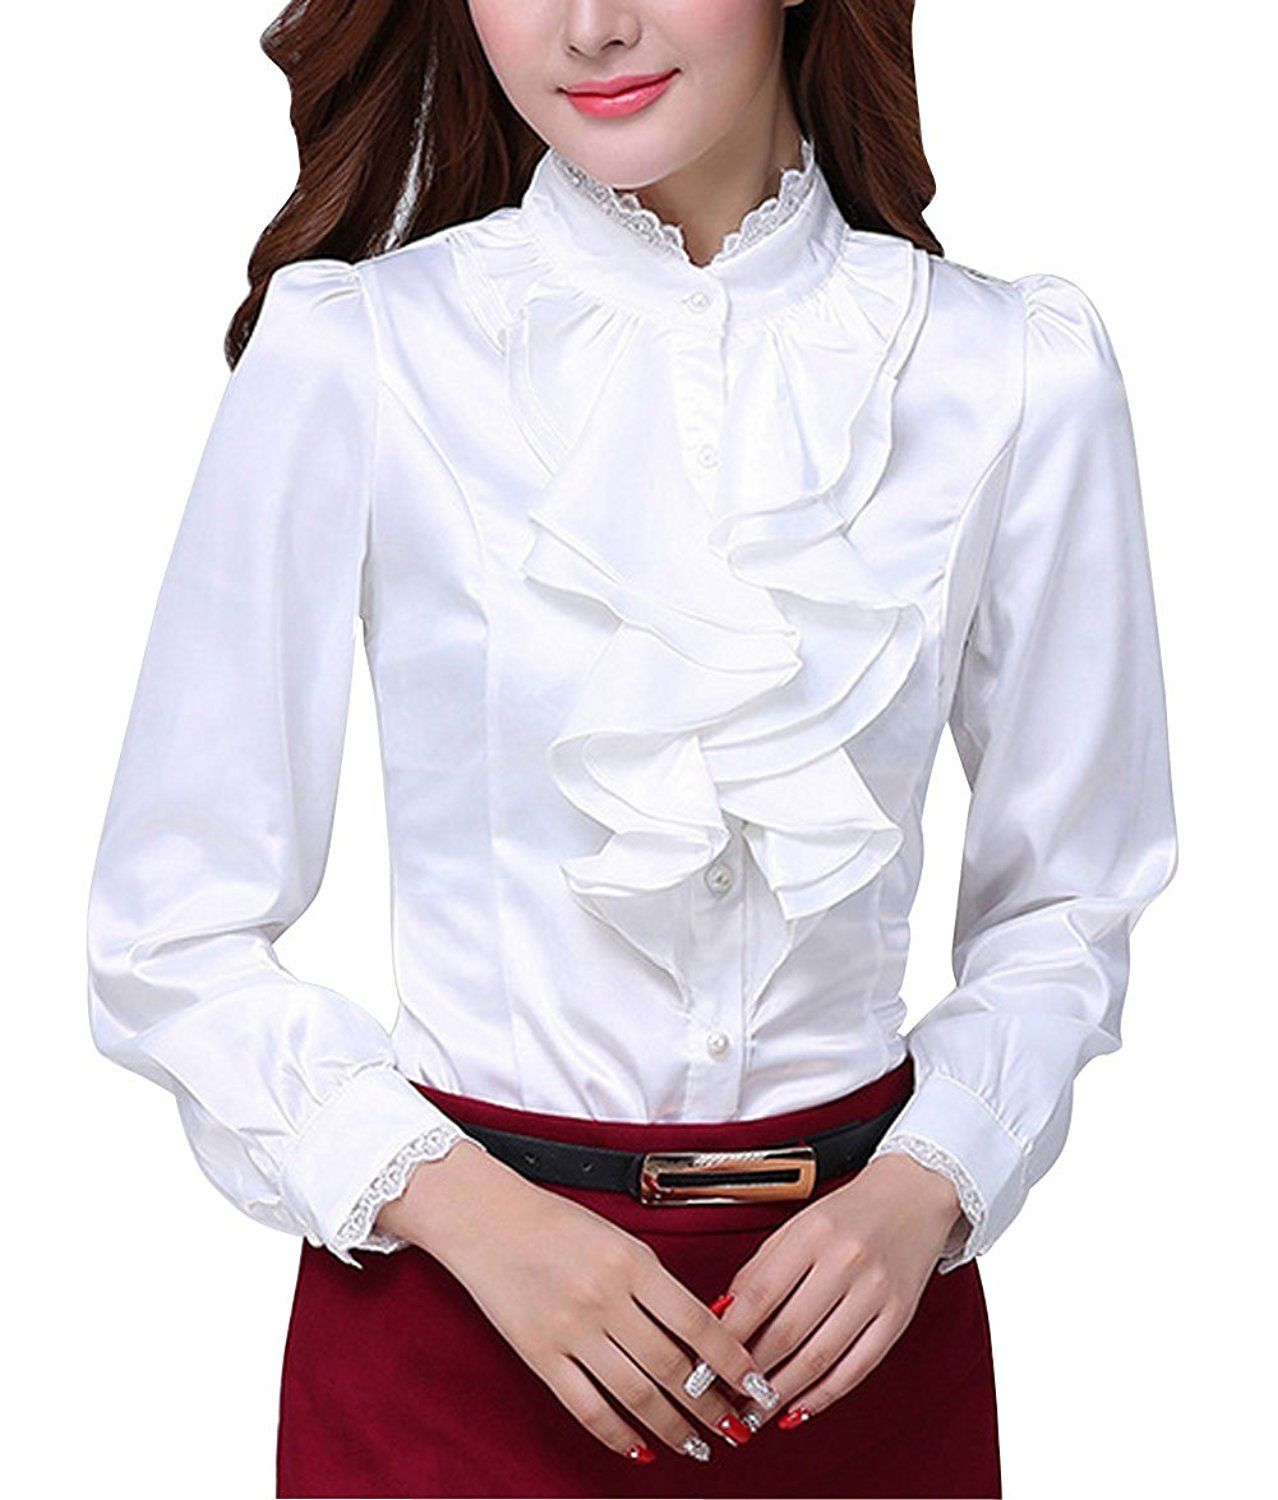 28ca6a878e568a DPO Women's Chiffon Ruffle Lace Founcing Front Shirt Long Sleeve Blouse  White 12, XXL at Amazon Women's Clothing store: